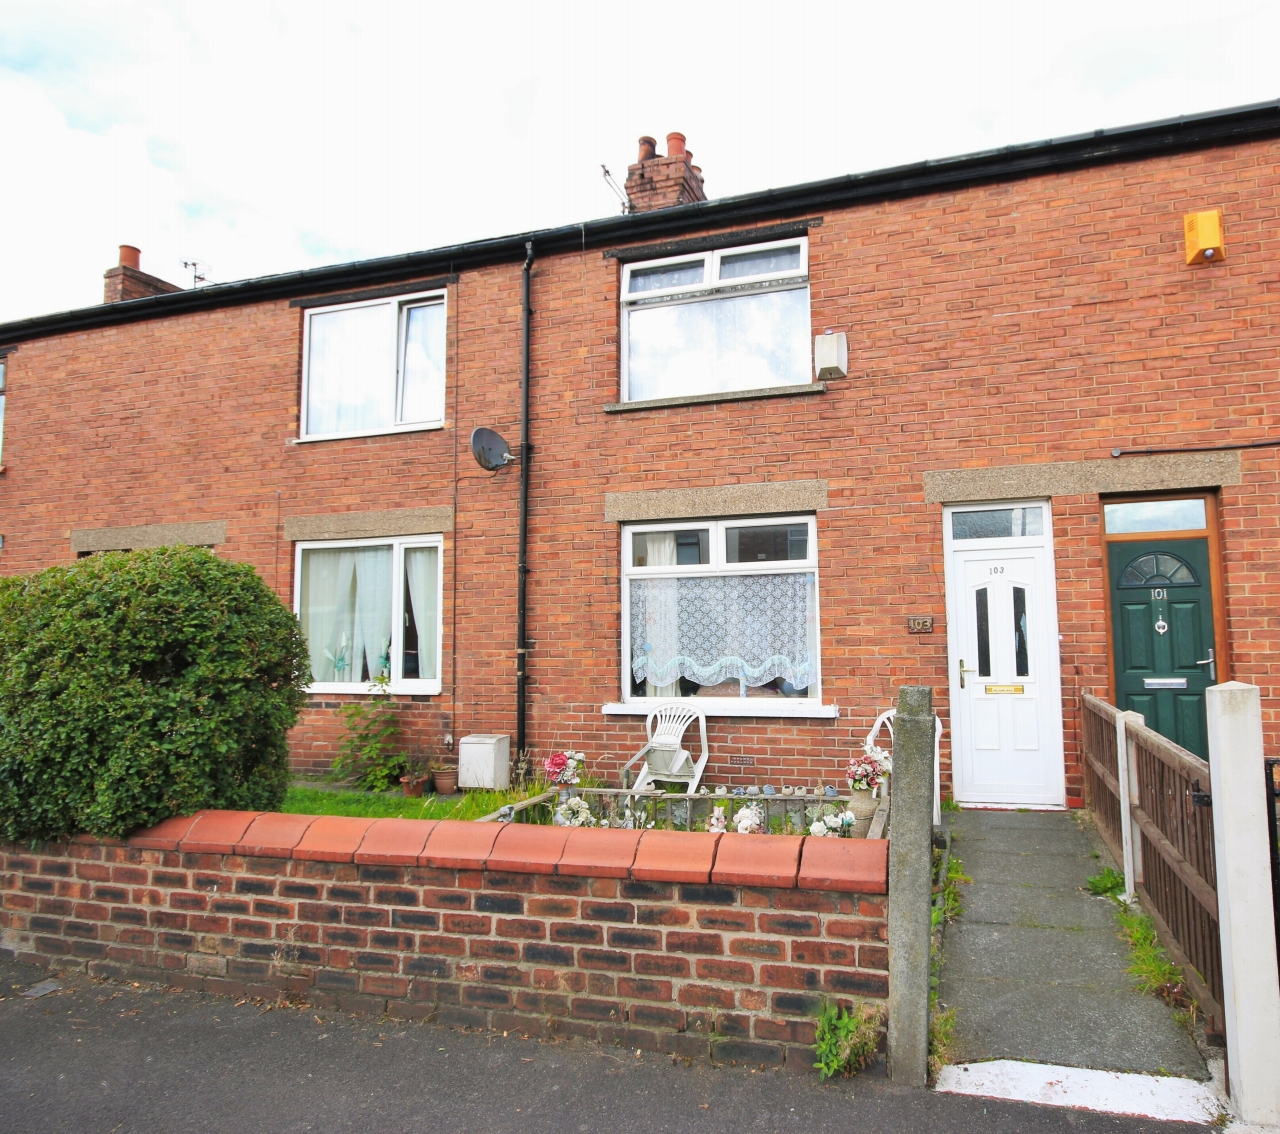 Mid America Apartments: 2 Bedroom Mid Terraced House In 103 Scot Lane, Wigan, WN5